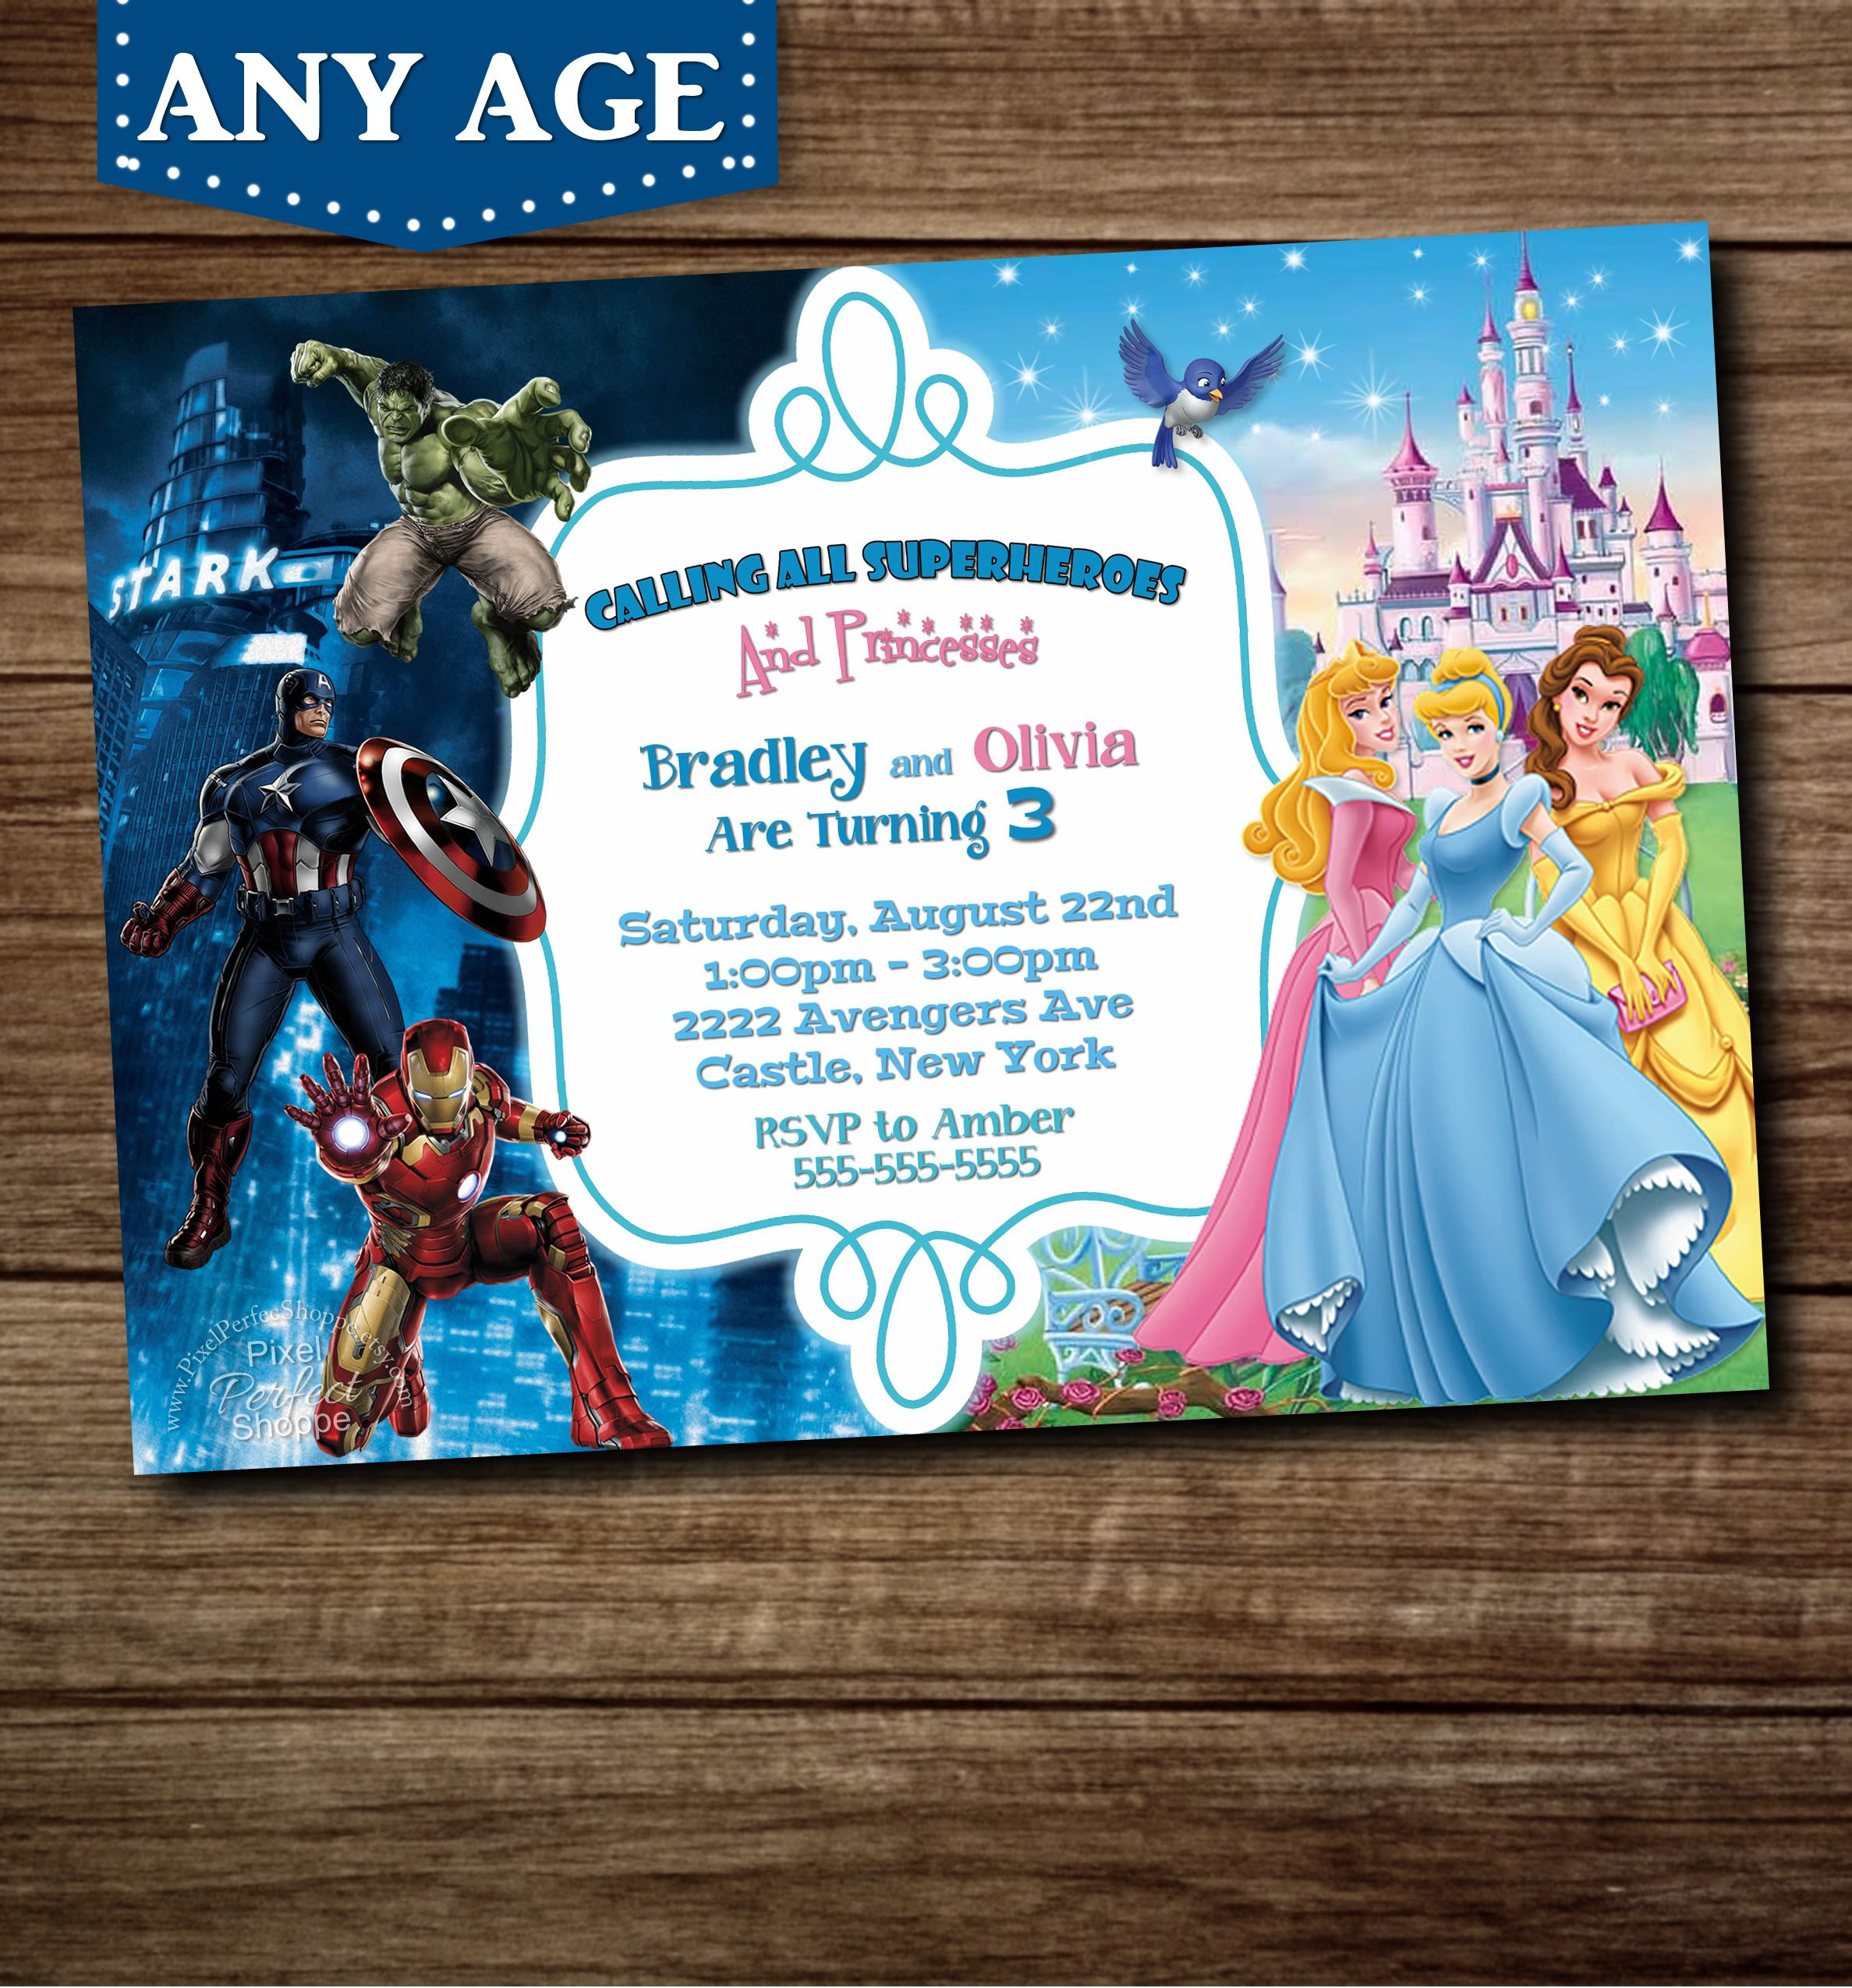 disney princess party invitation templates%0A Sample Resume Gym Membership Form Template